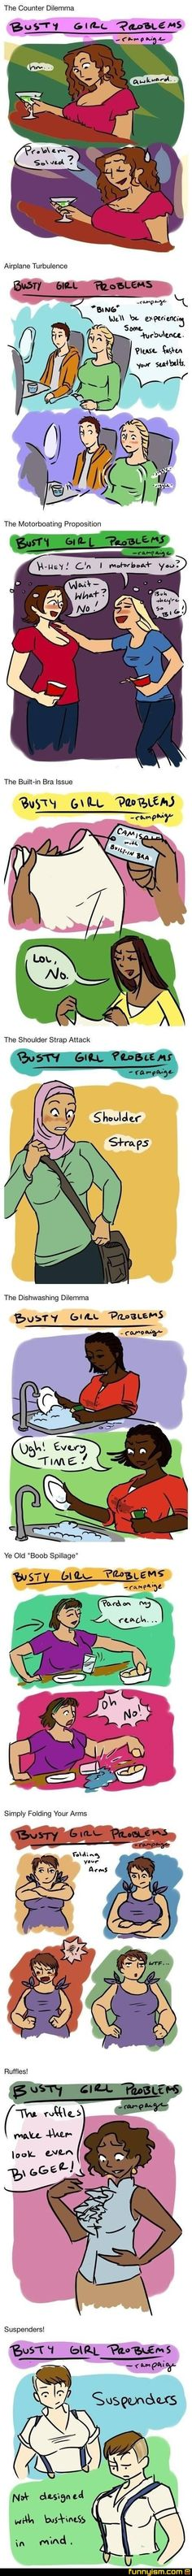 Busty Girl Problems--Funnyism Picture